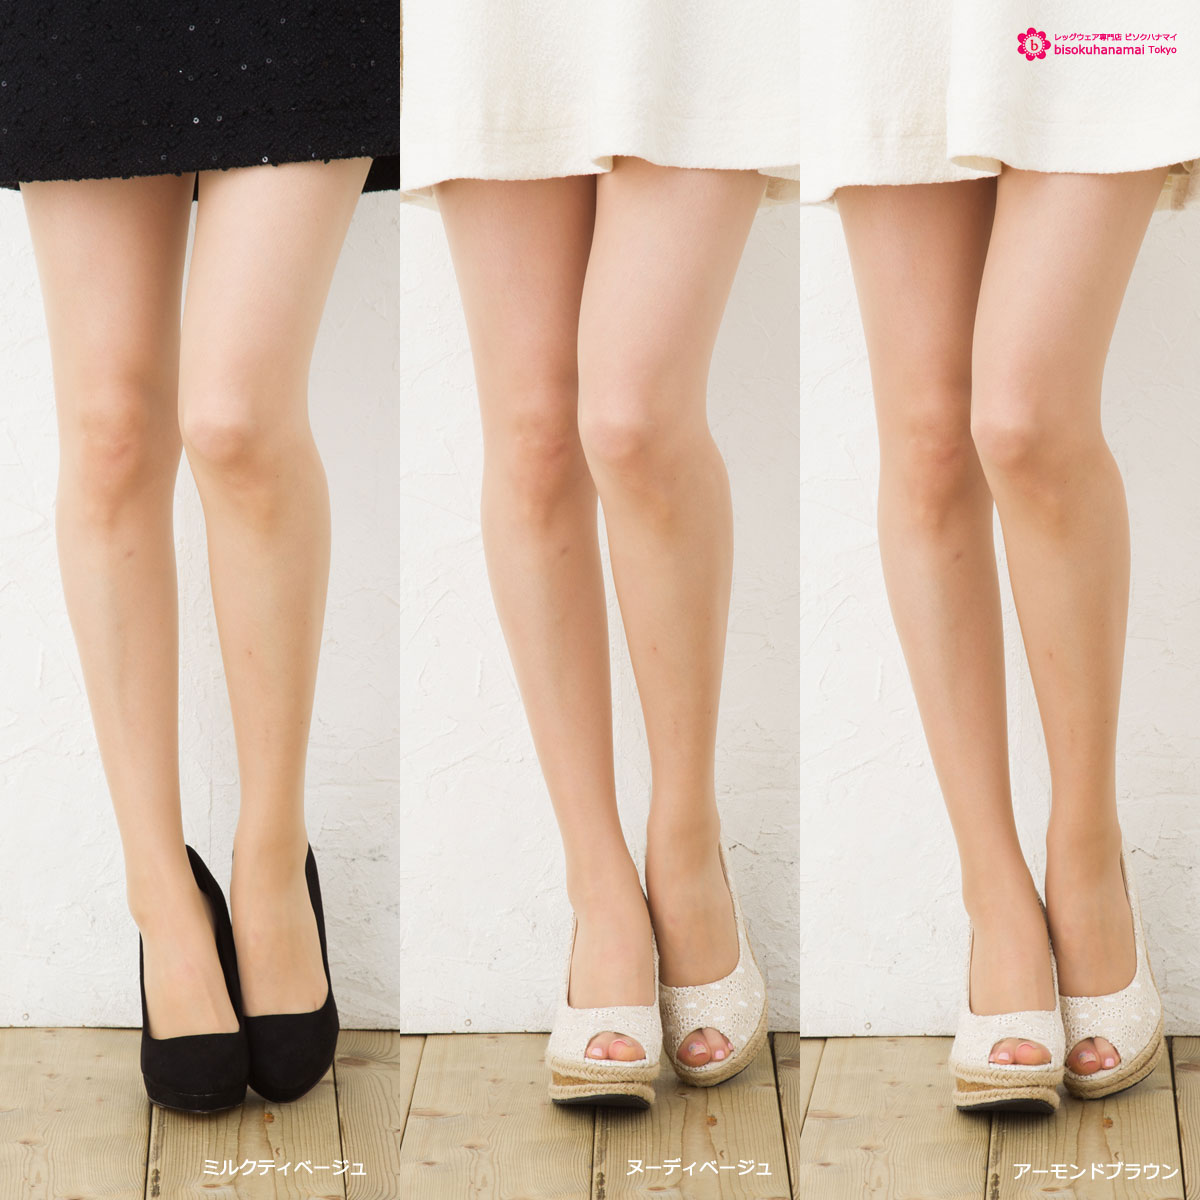 cacc1c592 bisokuhanamai  Not MORE hosiery stockings (stumbled ahead